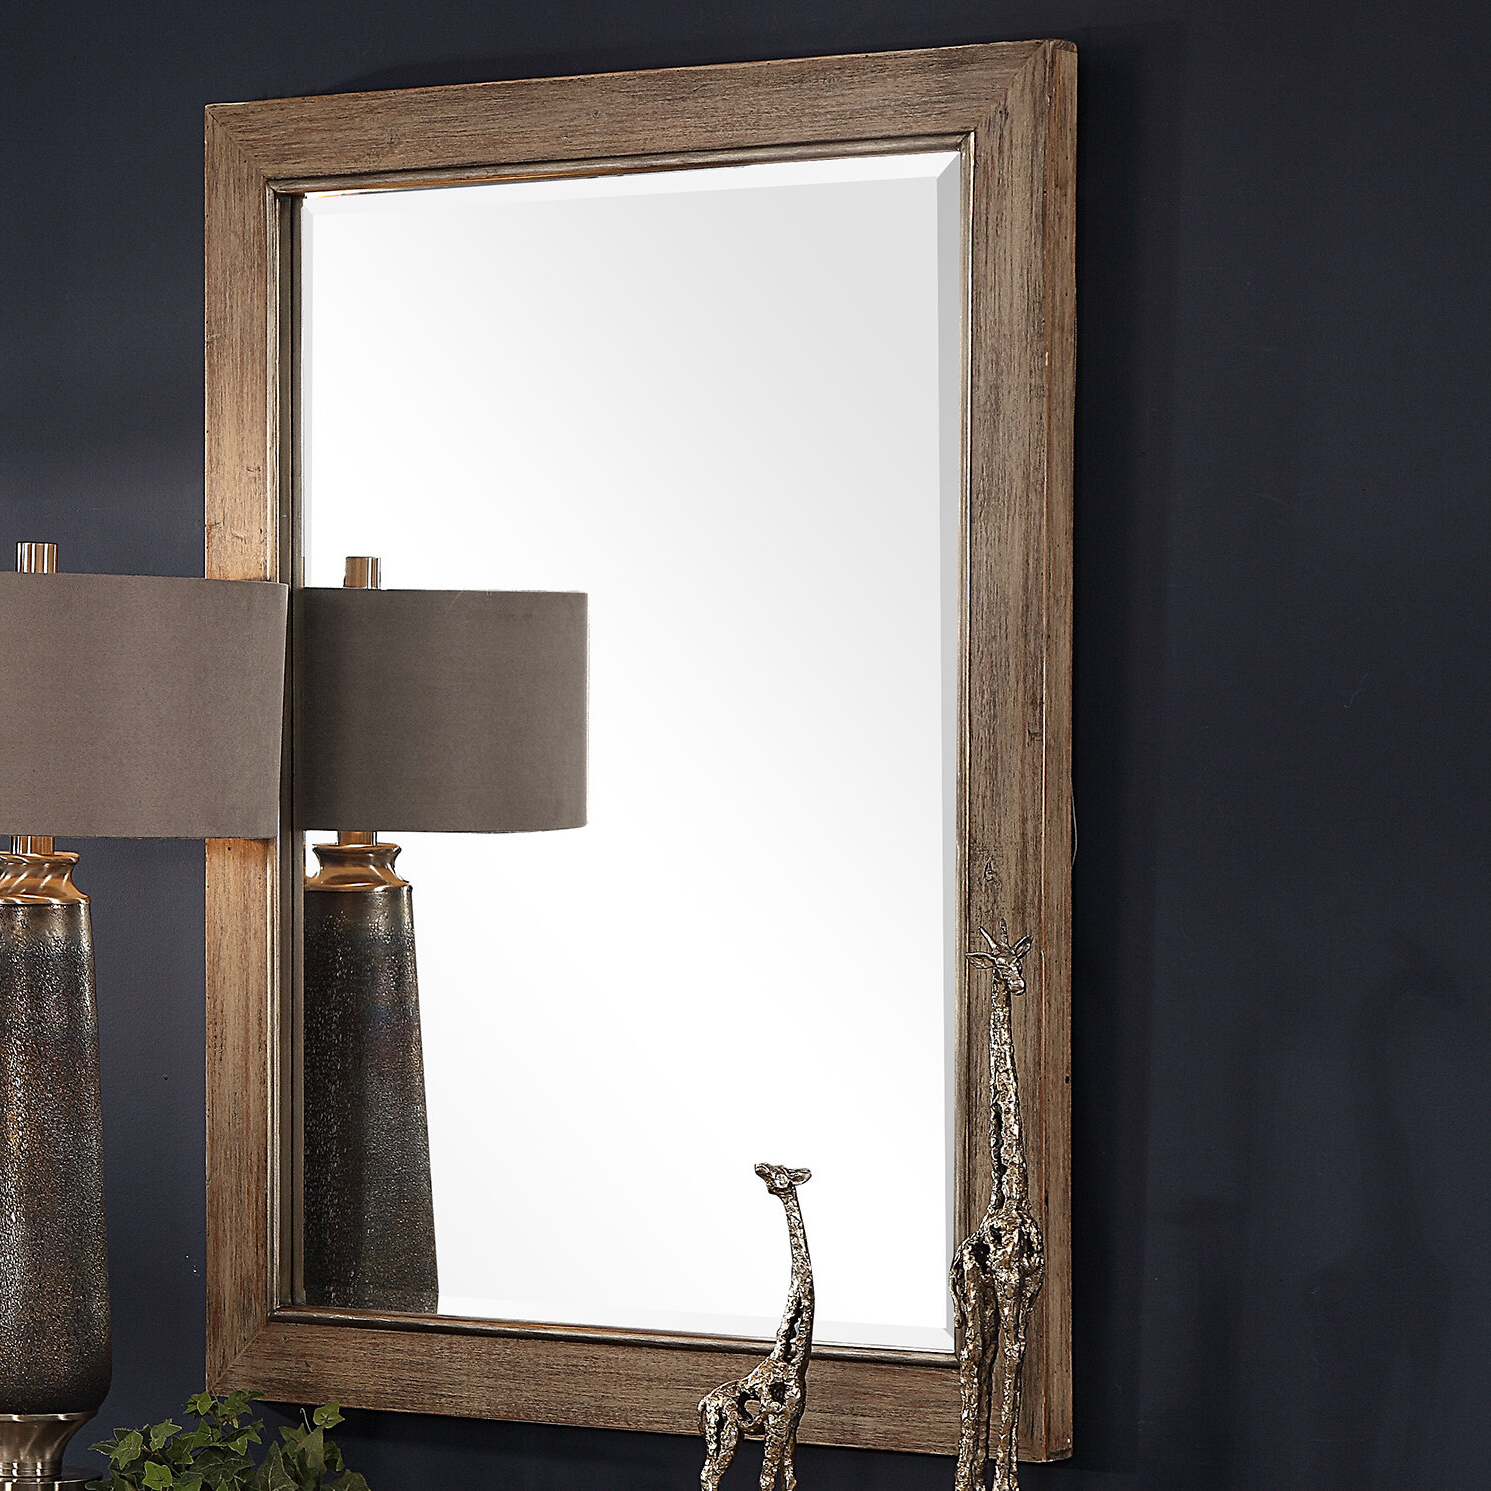 Berinhard Accent Mirrors Inside Widely Used Creola Farmhouse Beveled Accent Mirror (View 12 of 20)